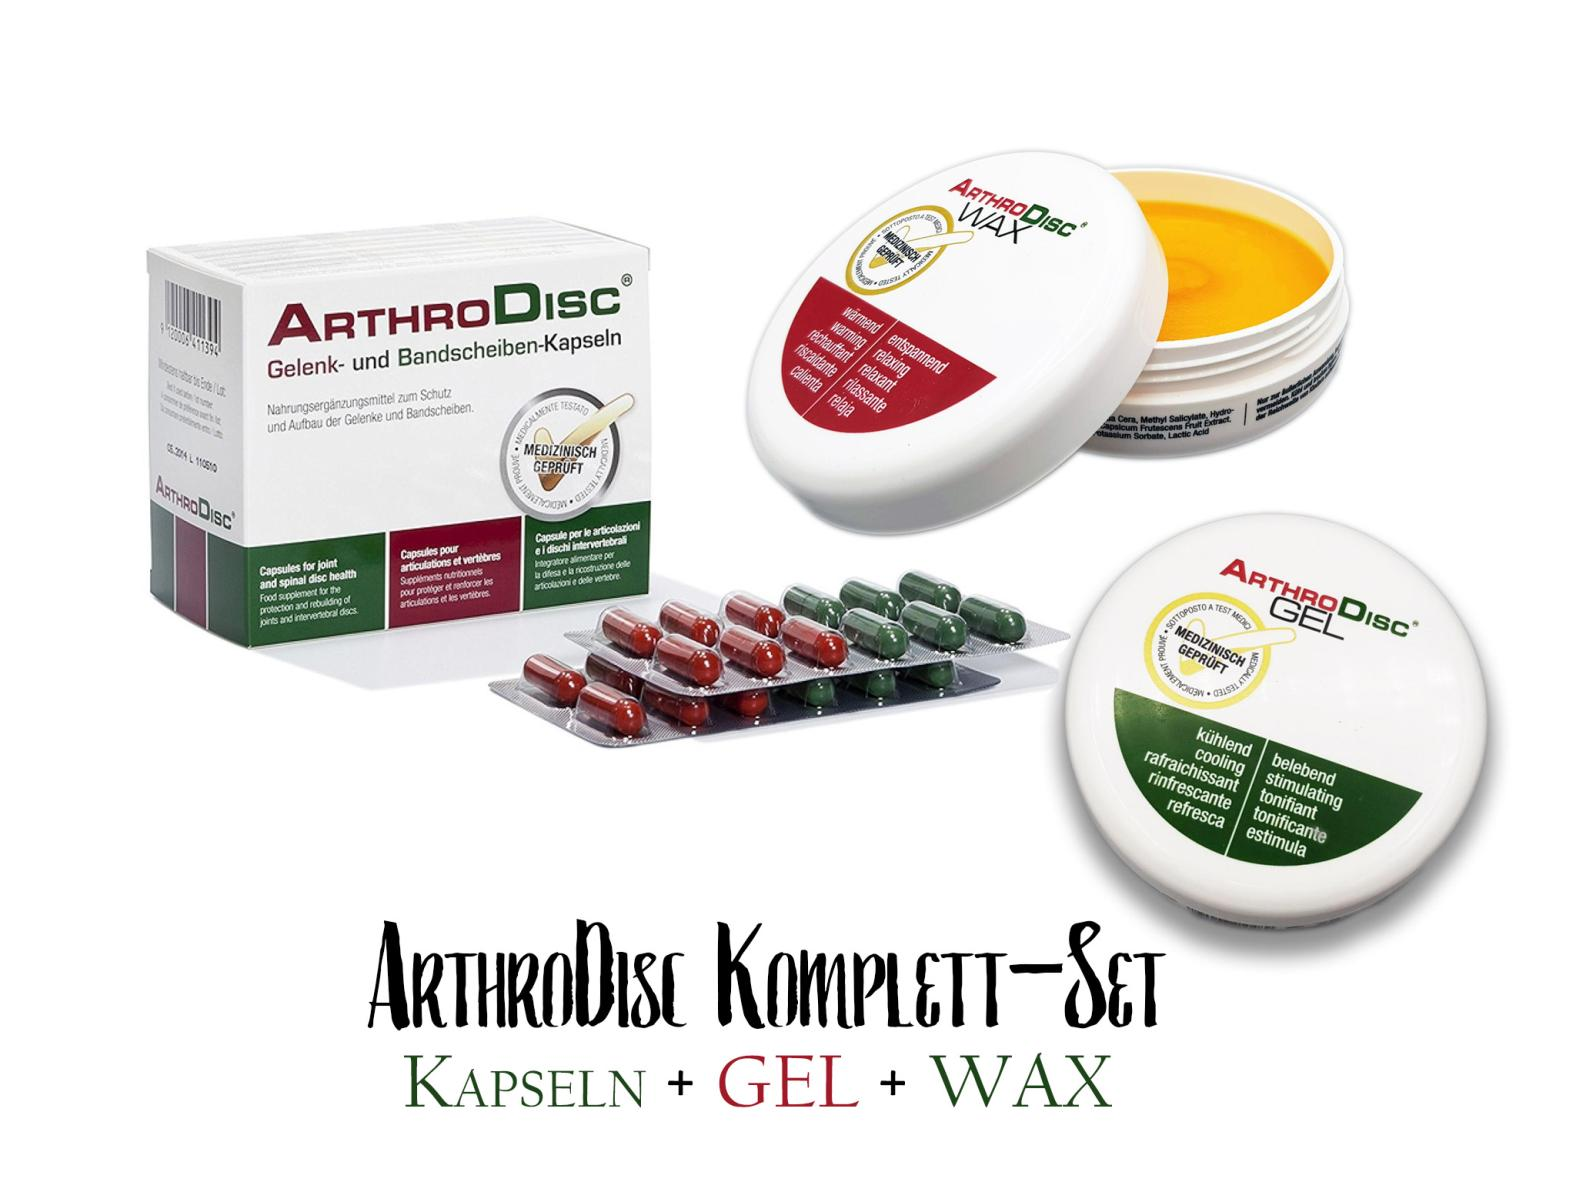 Fangocur ArthroDisc Komplett-Set (Arthro Disc Kapseln + Gel + Wax)